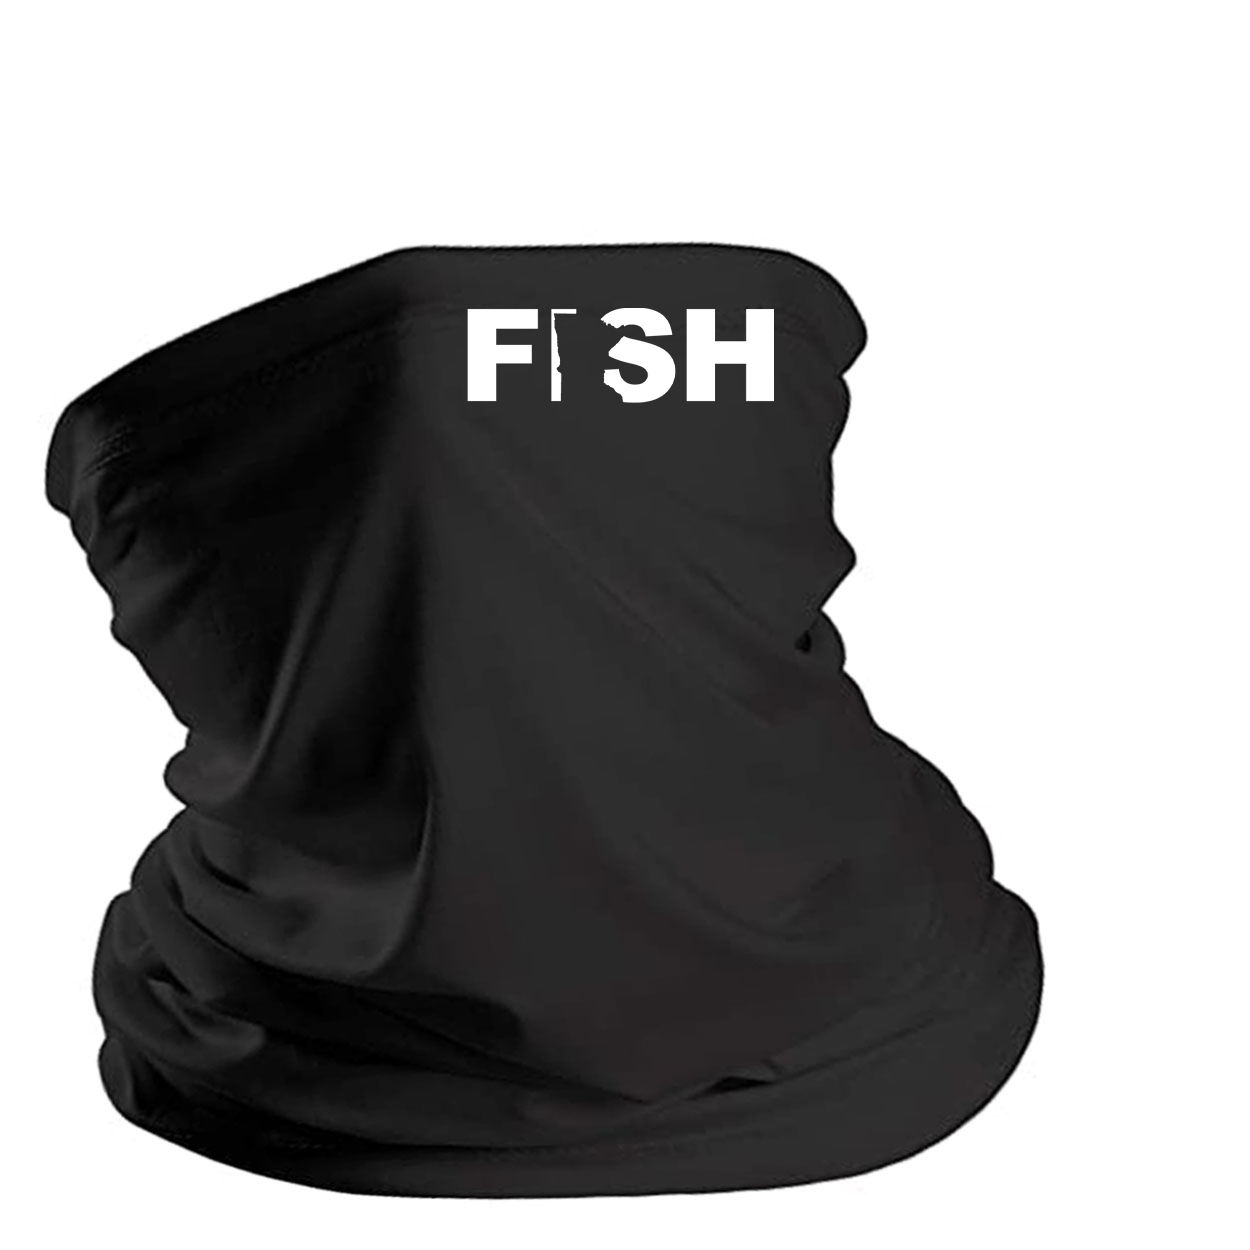 Fish Minnesota Night Out Lightweight Neck Gaiter Face Mask Black (White Logo)